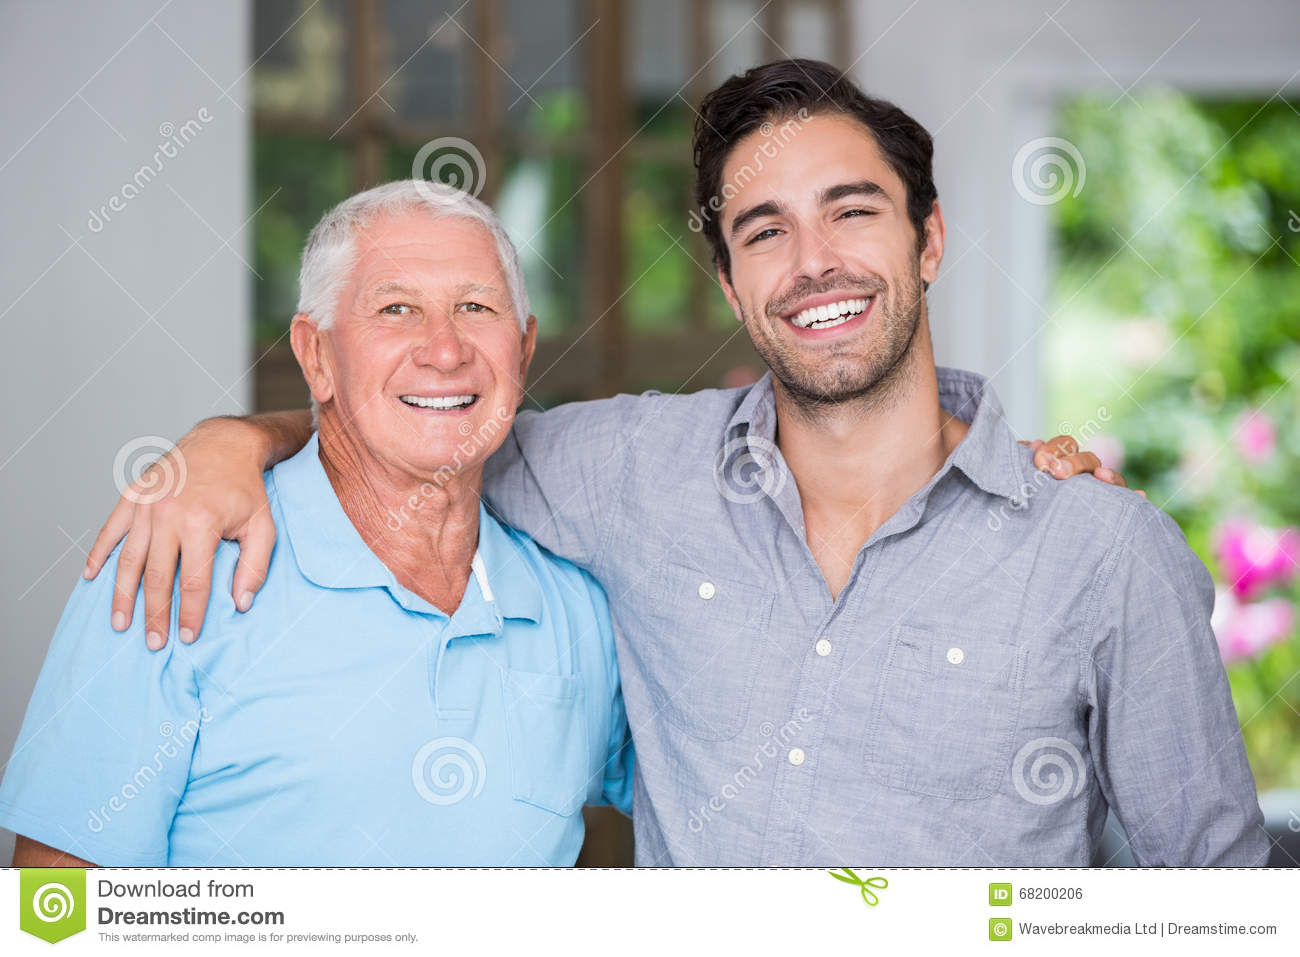 Portrait of smiling father and son with arm around